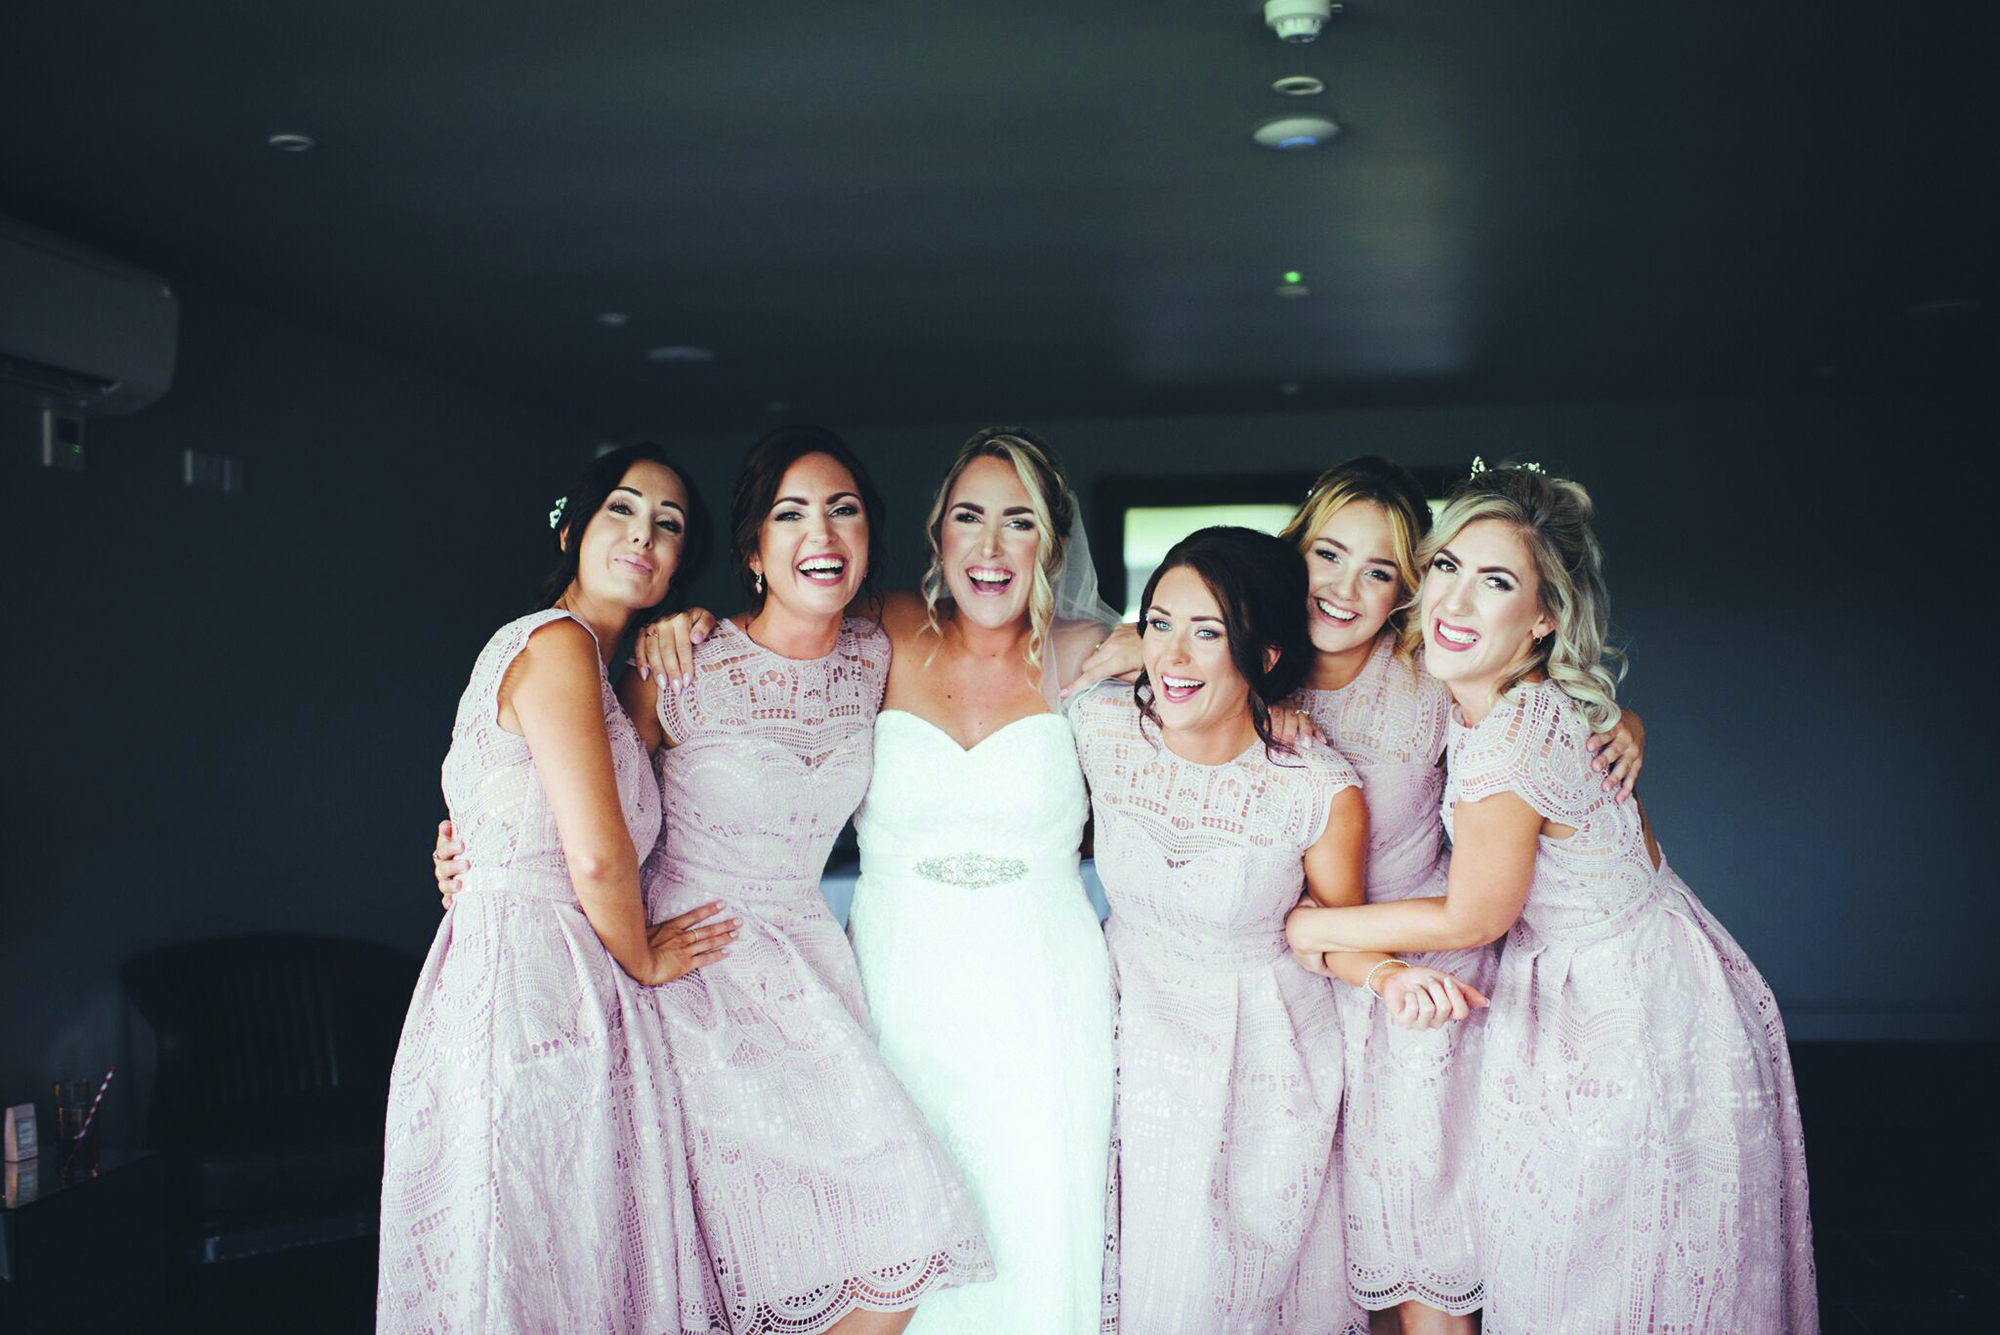 The Bride and Bridesmaids enjoying the atmosphere at All Saints Hotel wedding venue